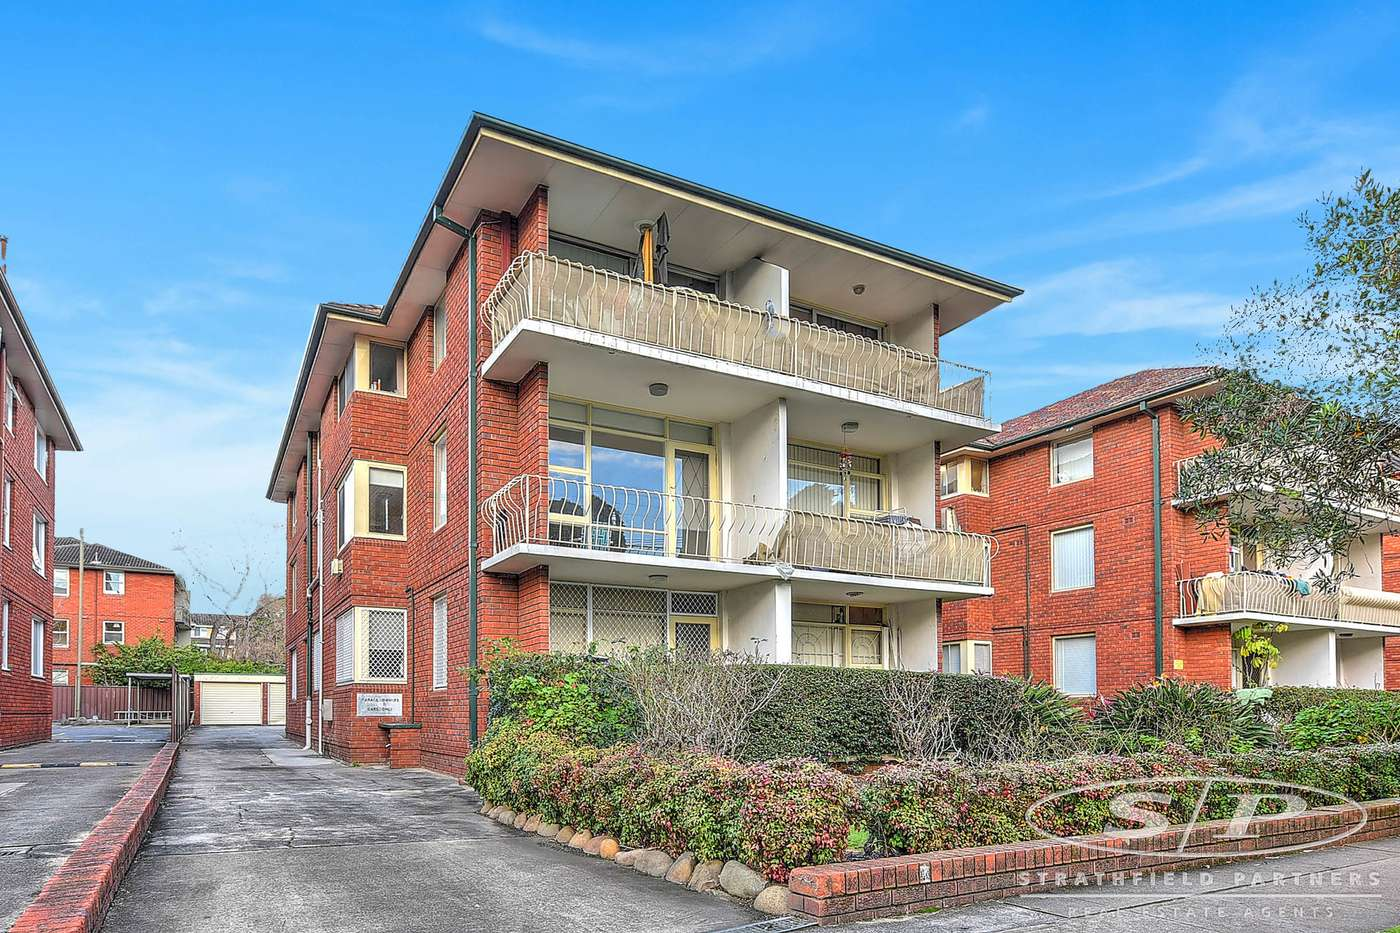 Main view of Homely unit listing, 11/20 Morwick Street, Strathfield, NSW 2135